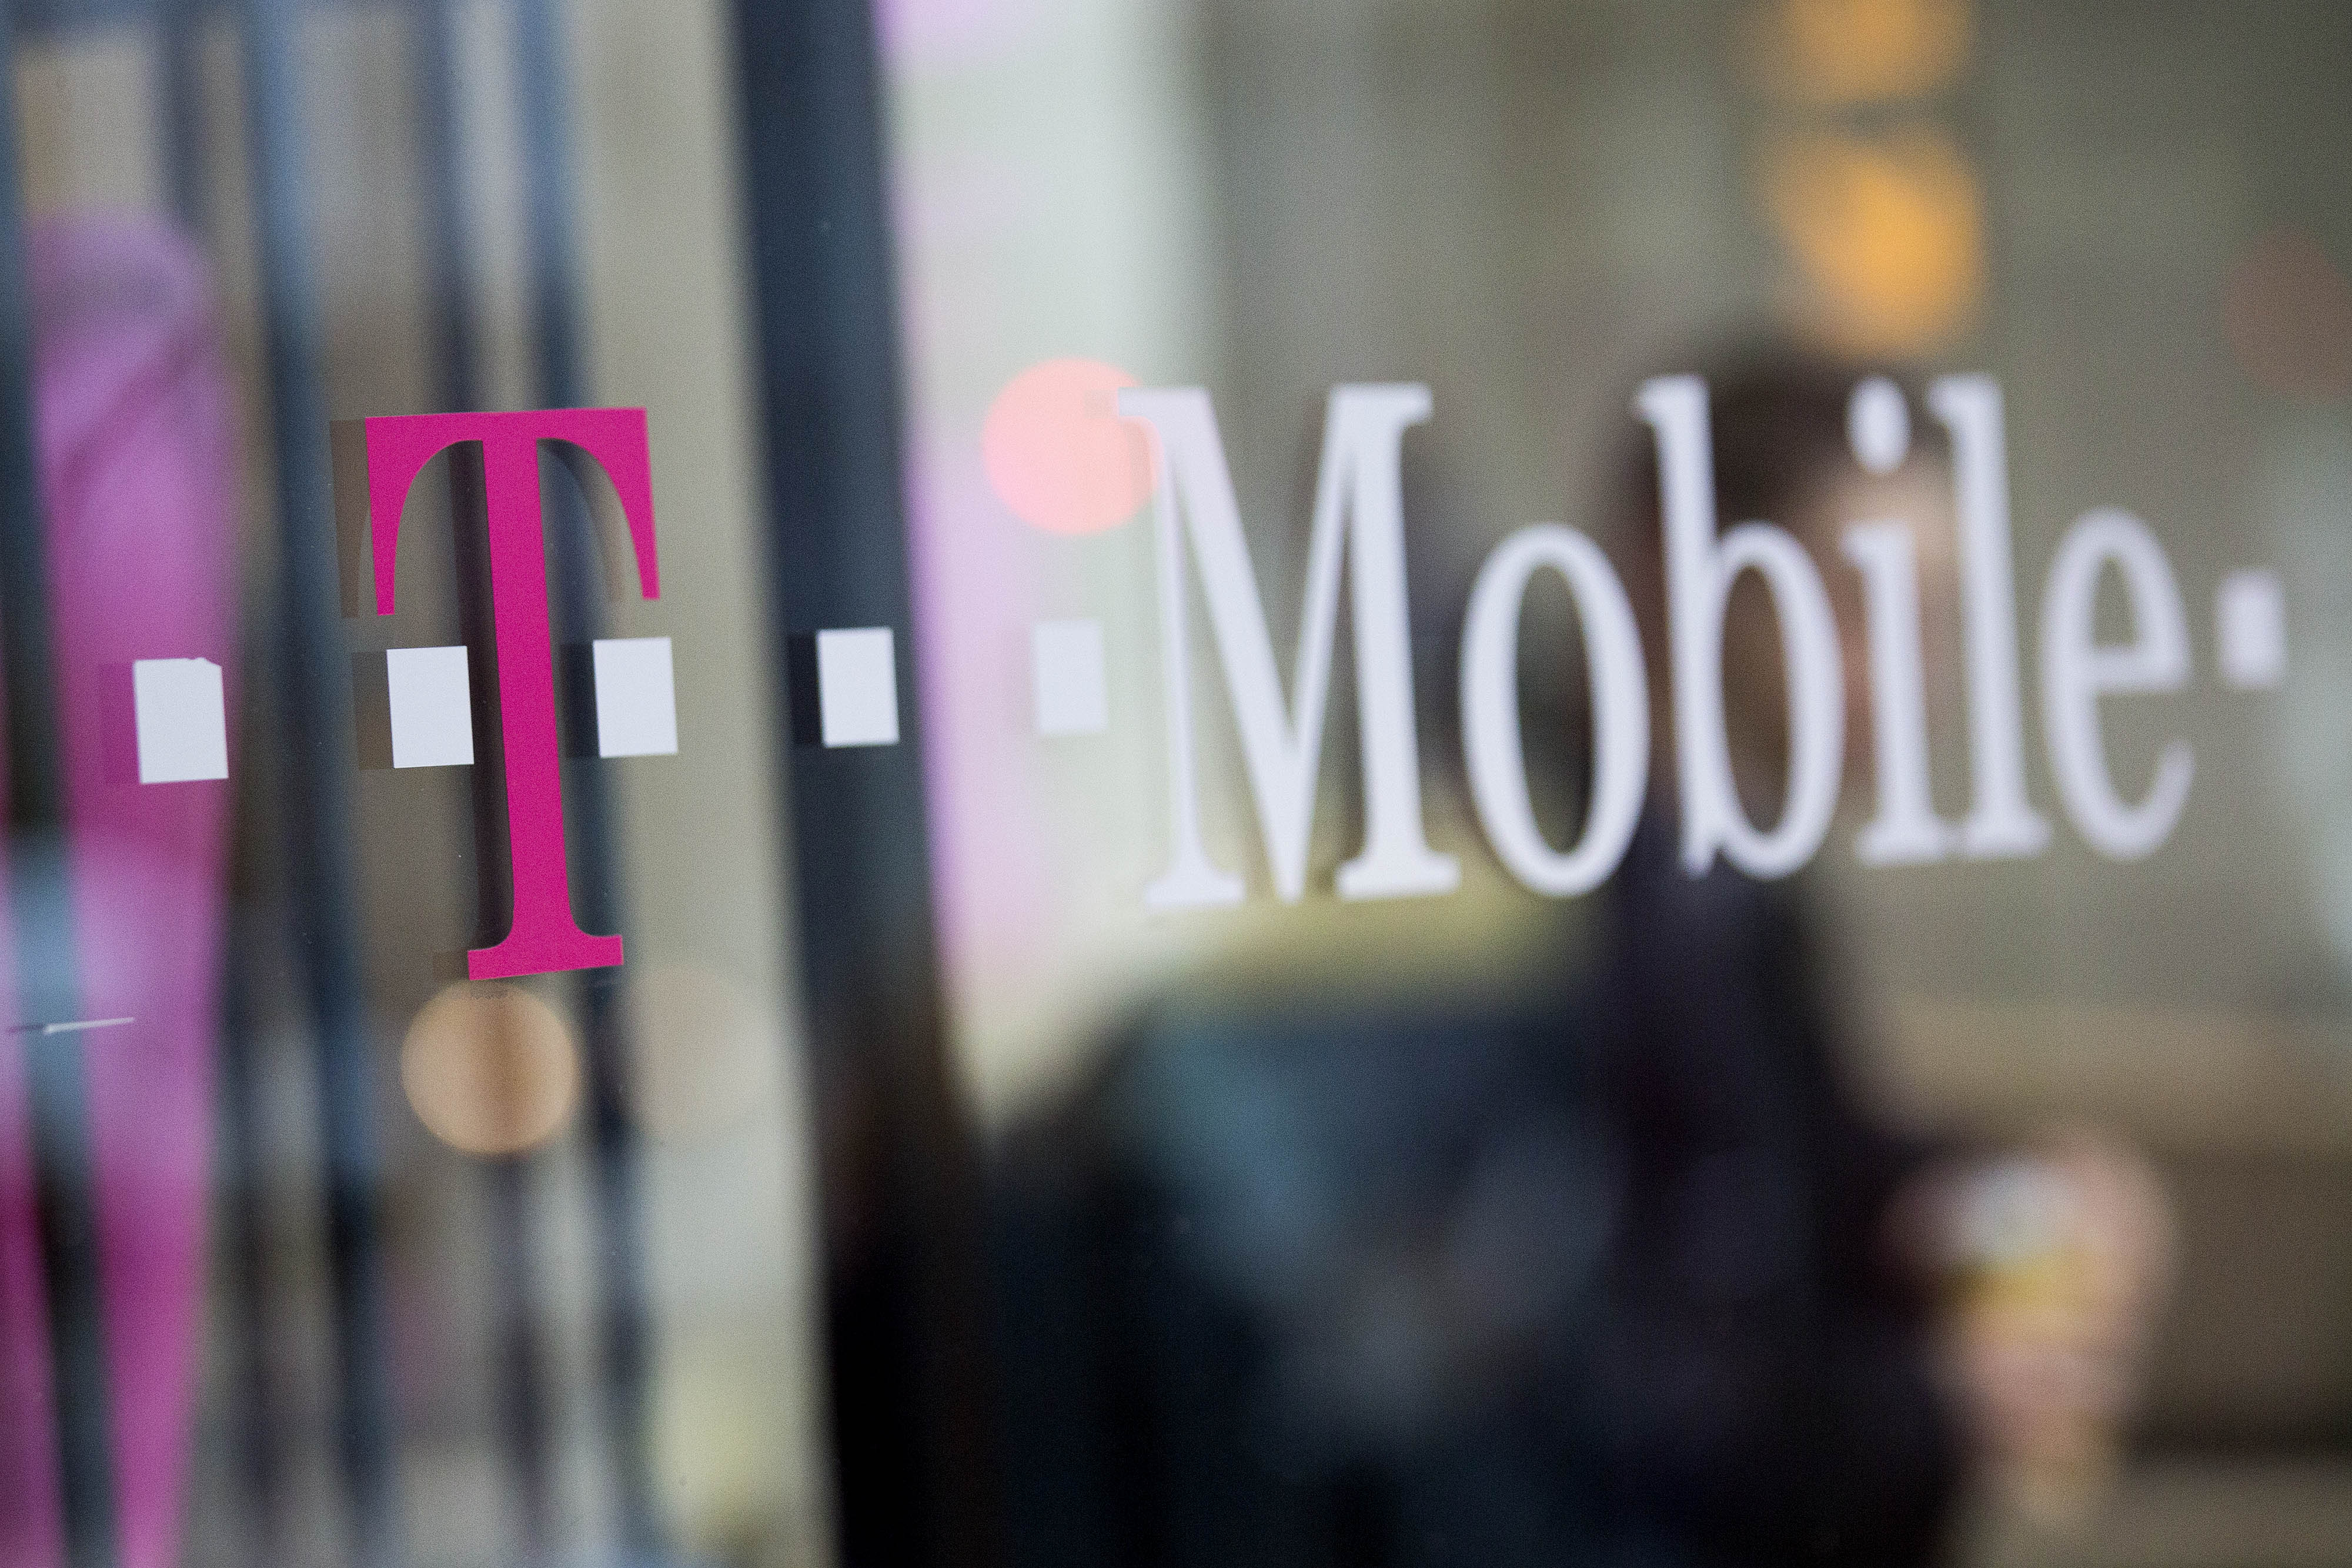 T-Mobile US Inc. signage is displayed in the window of a retail store in Washington, D.C., on Oct. 23, 2014.